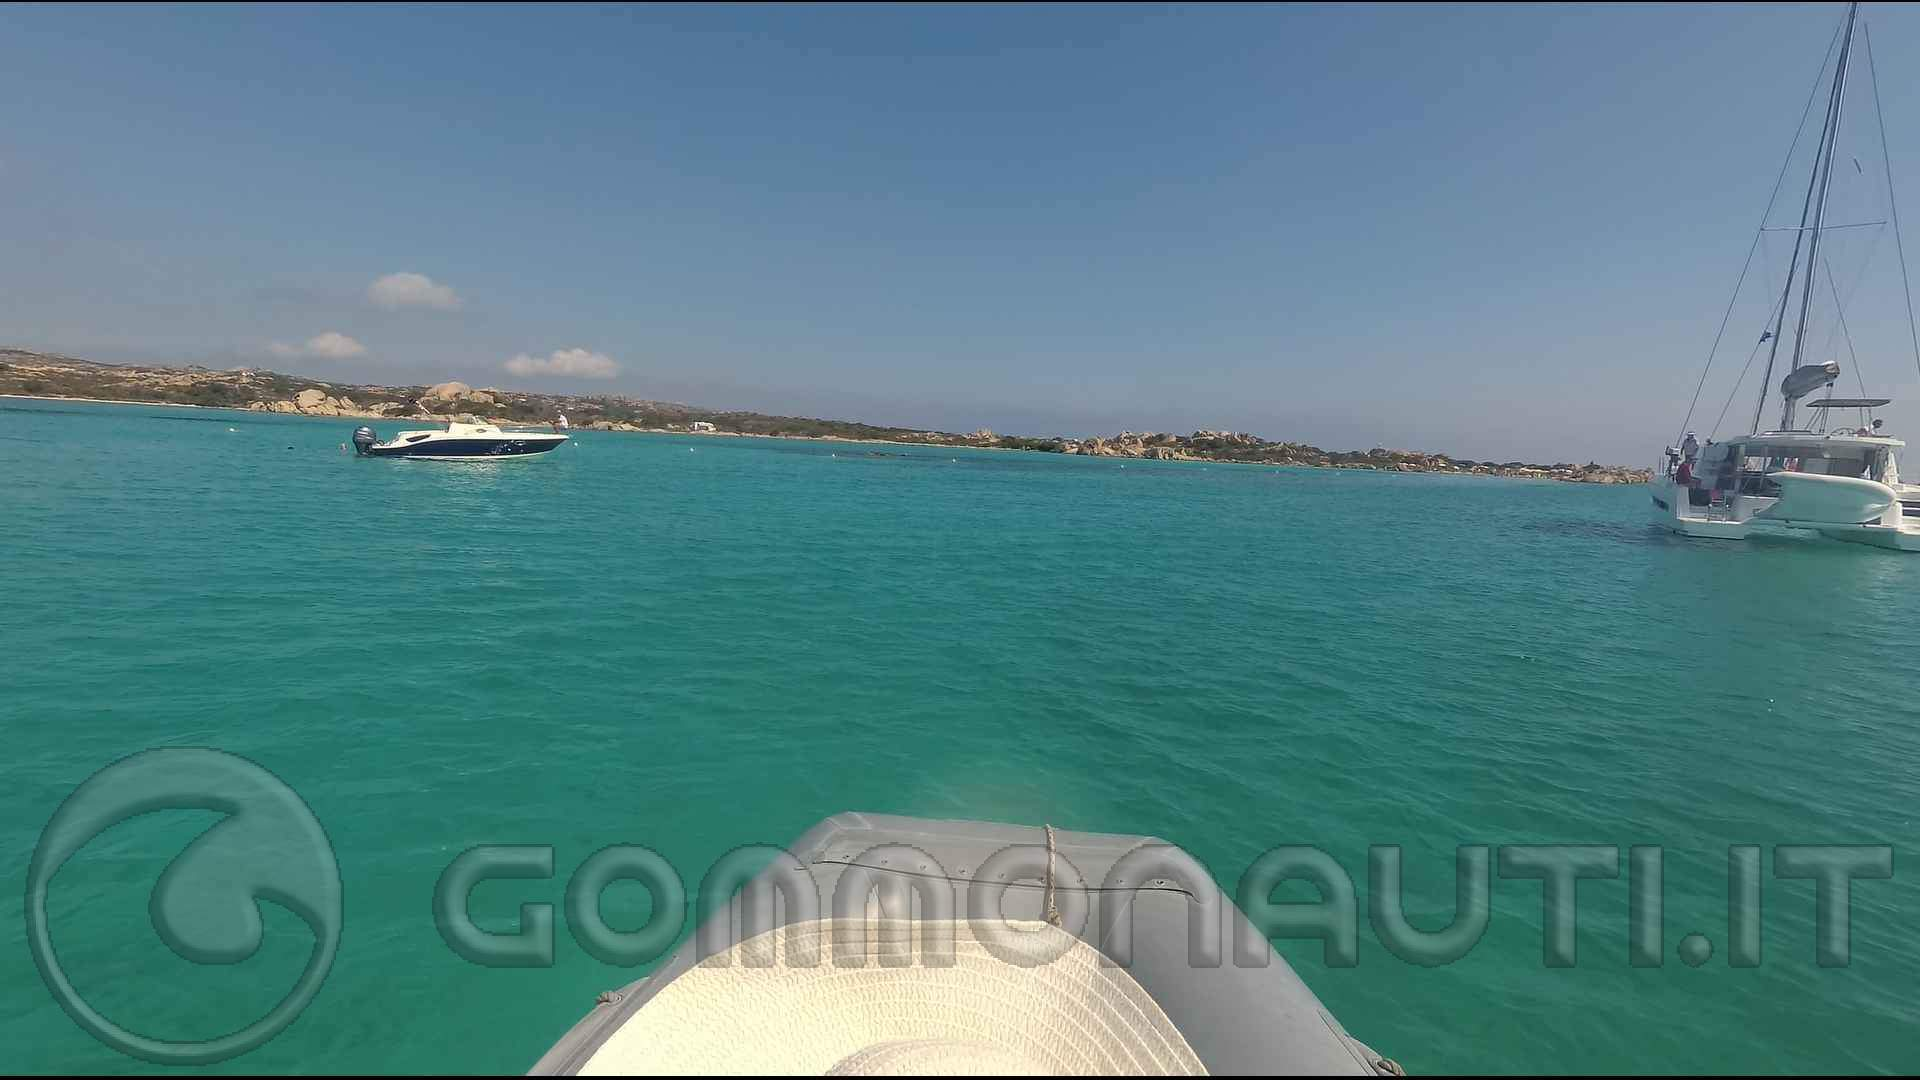 re: Arcipelago de La Maddalena - Estate 2019